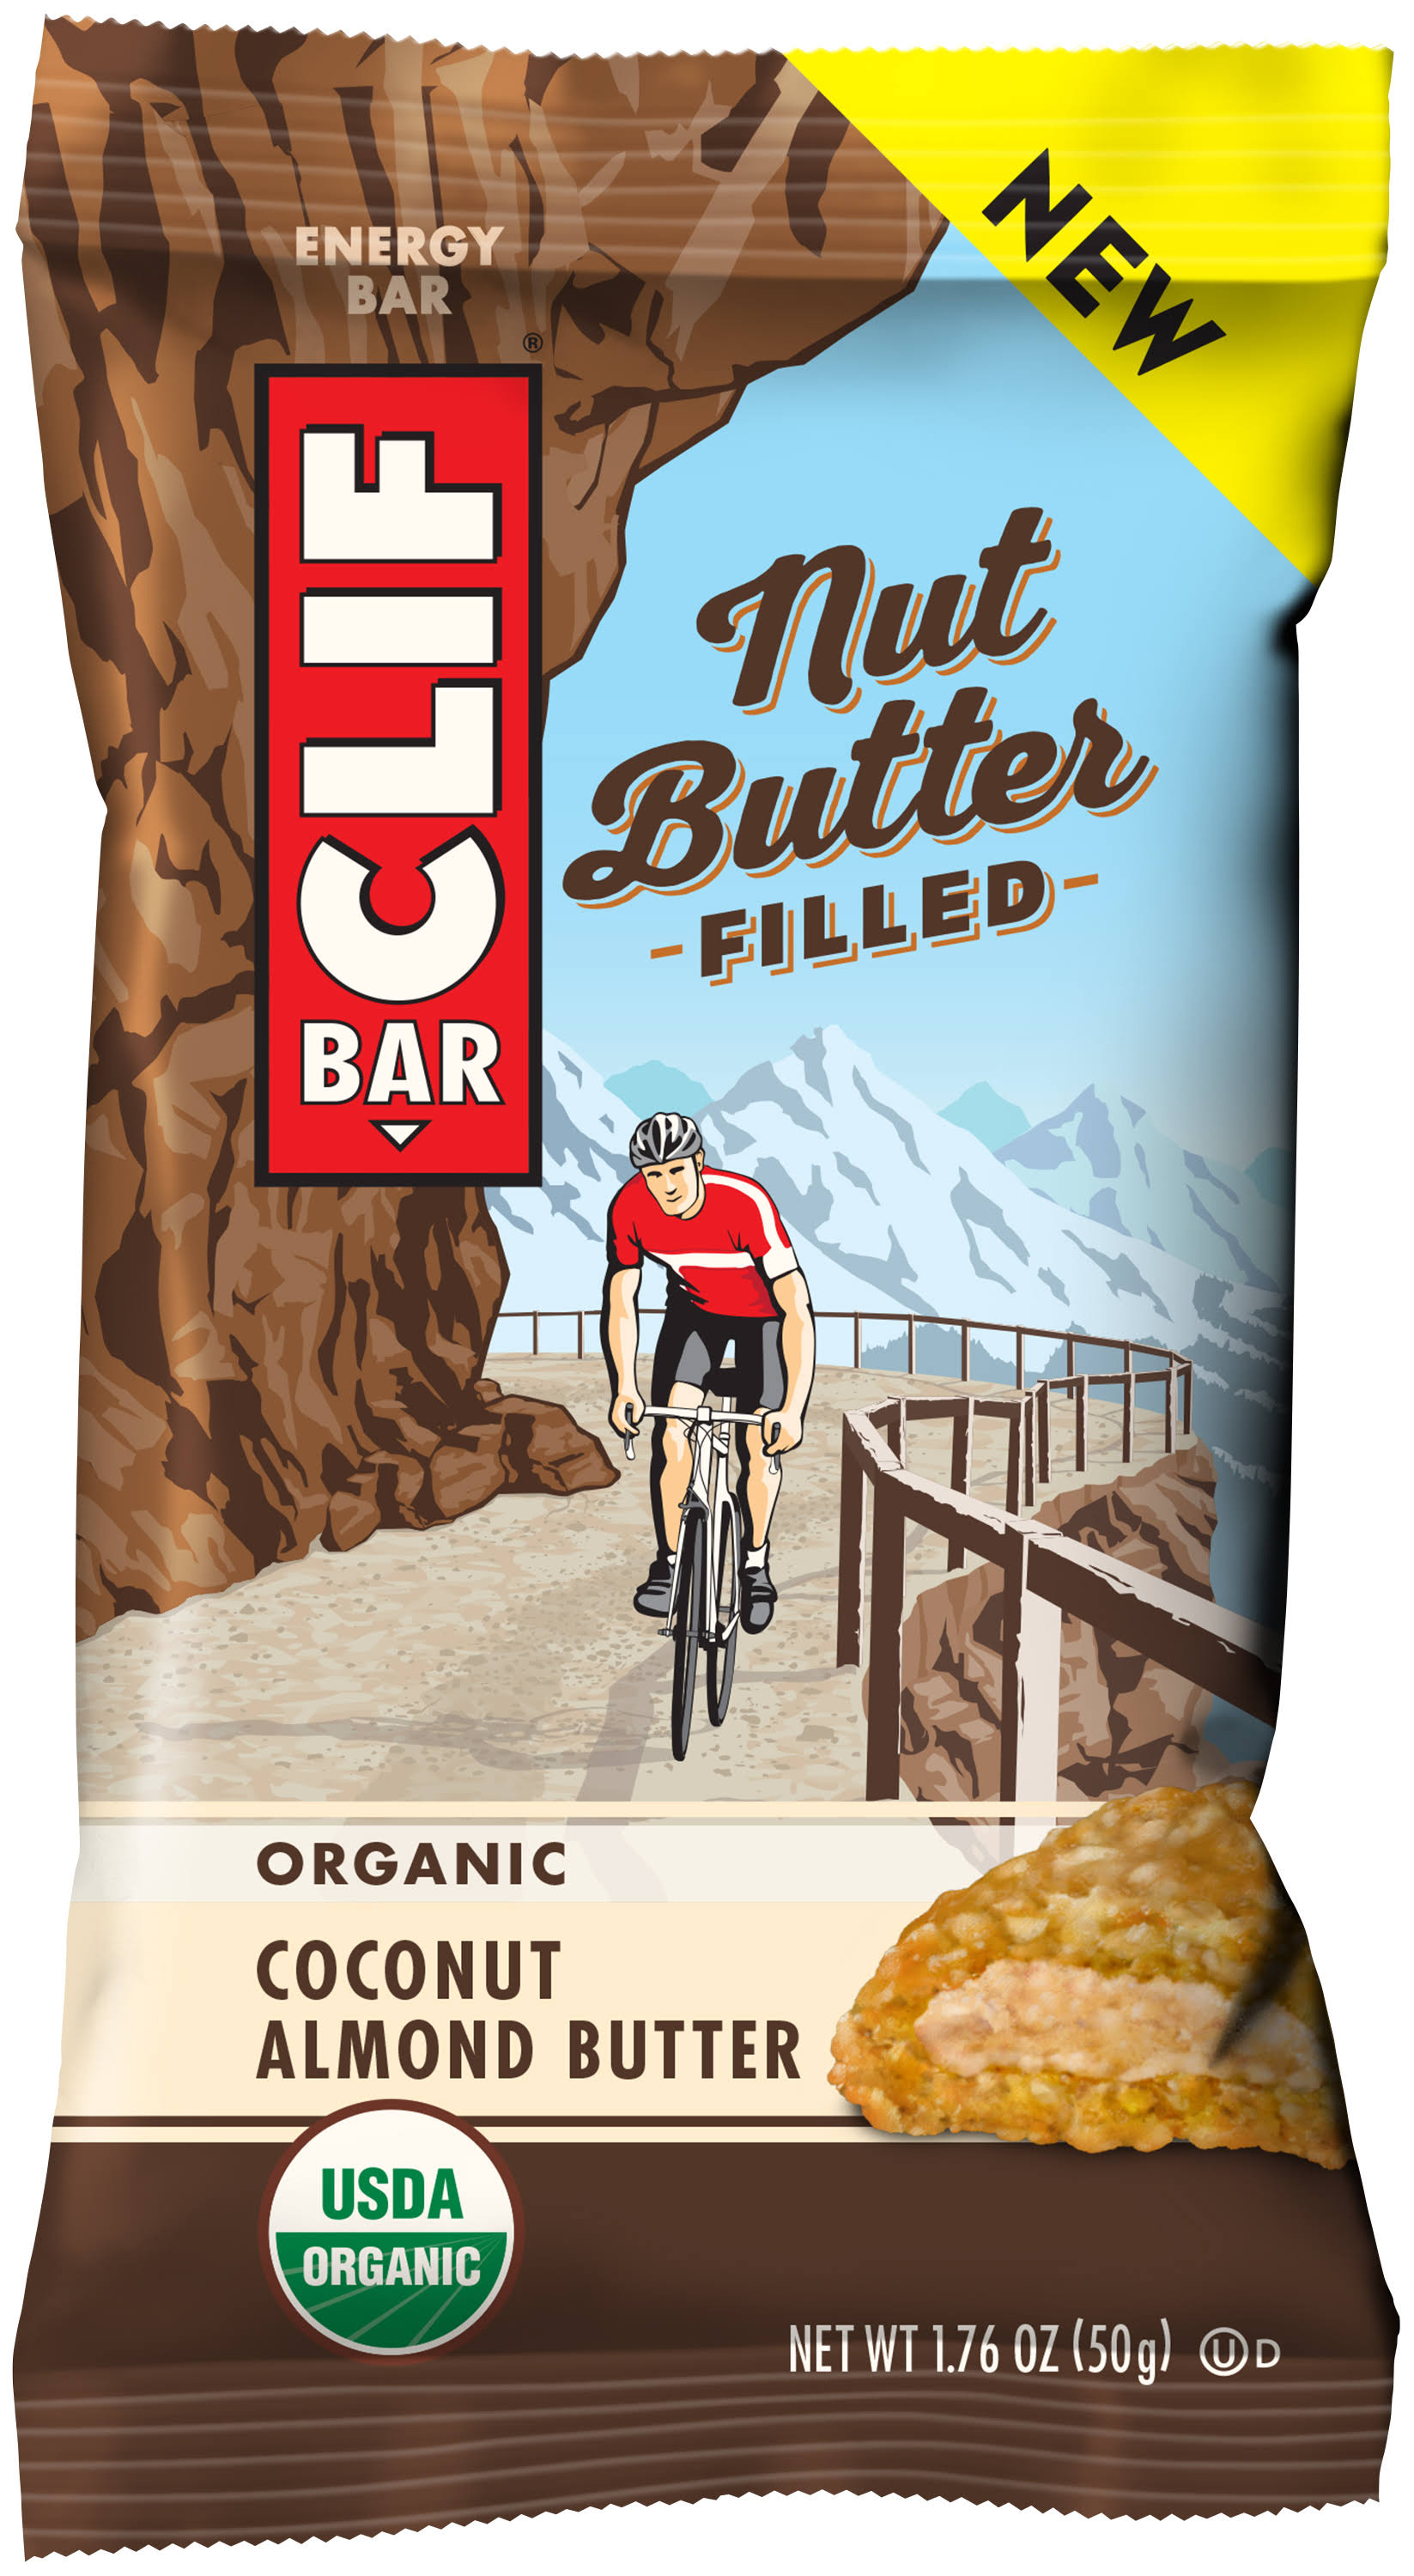 Clif Bar Organic Coconut Almond Butter - Nut Butter, 50g